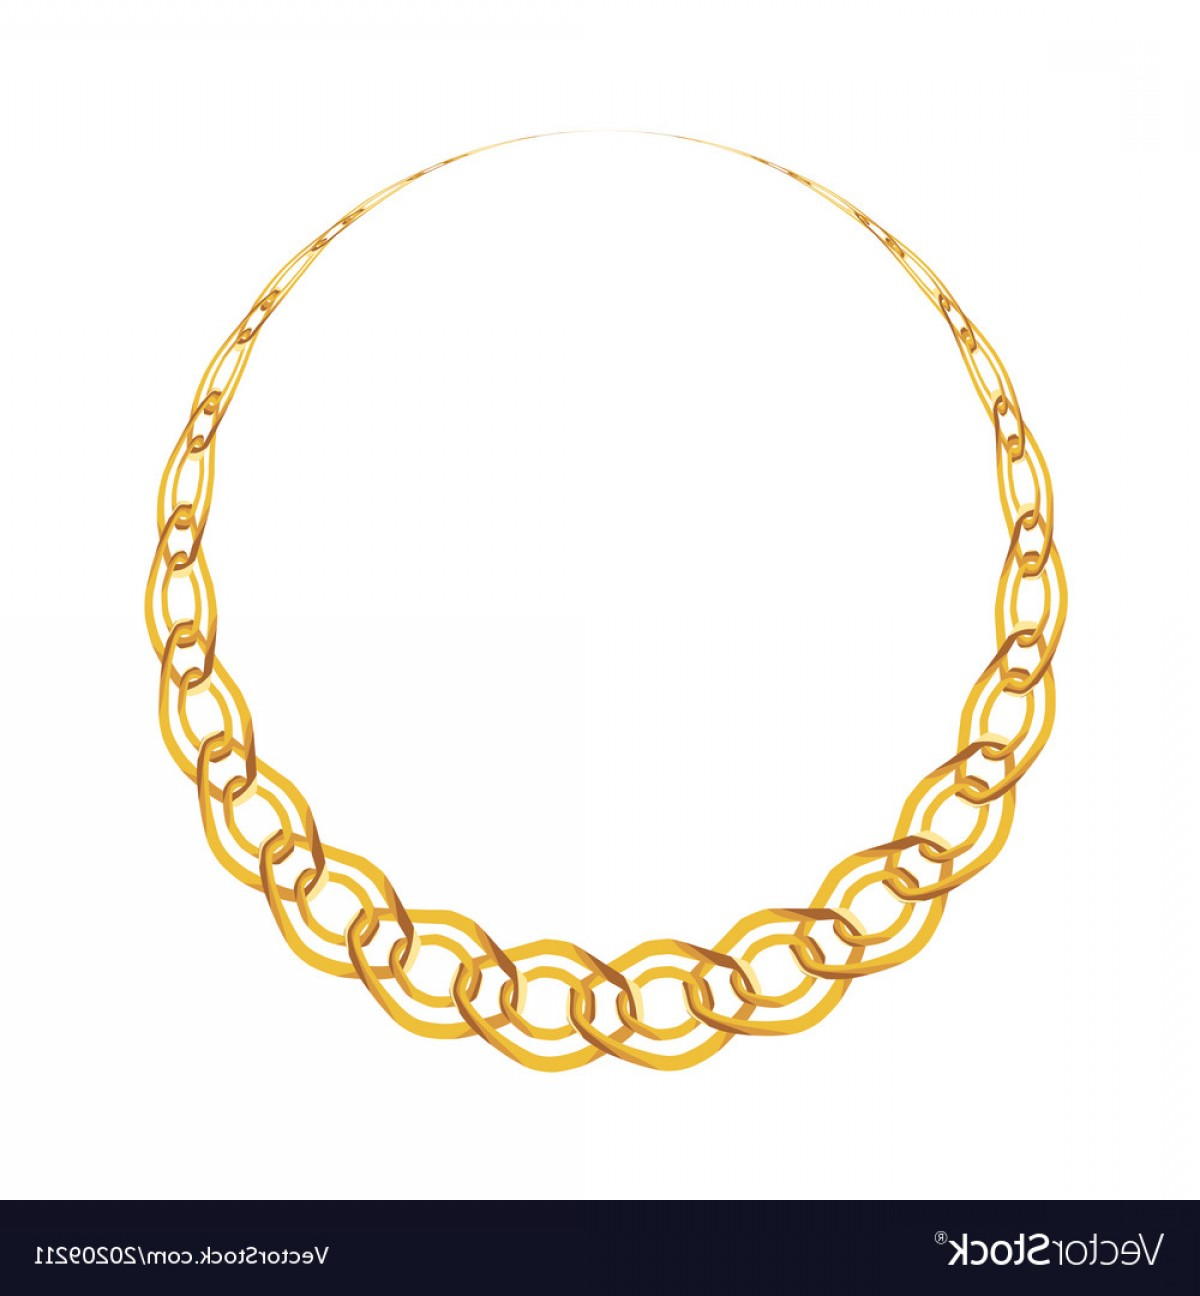 Necklace Vector Chain Grapicts: Gold Chain Jewelry On White Background Vector